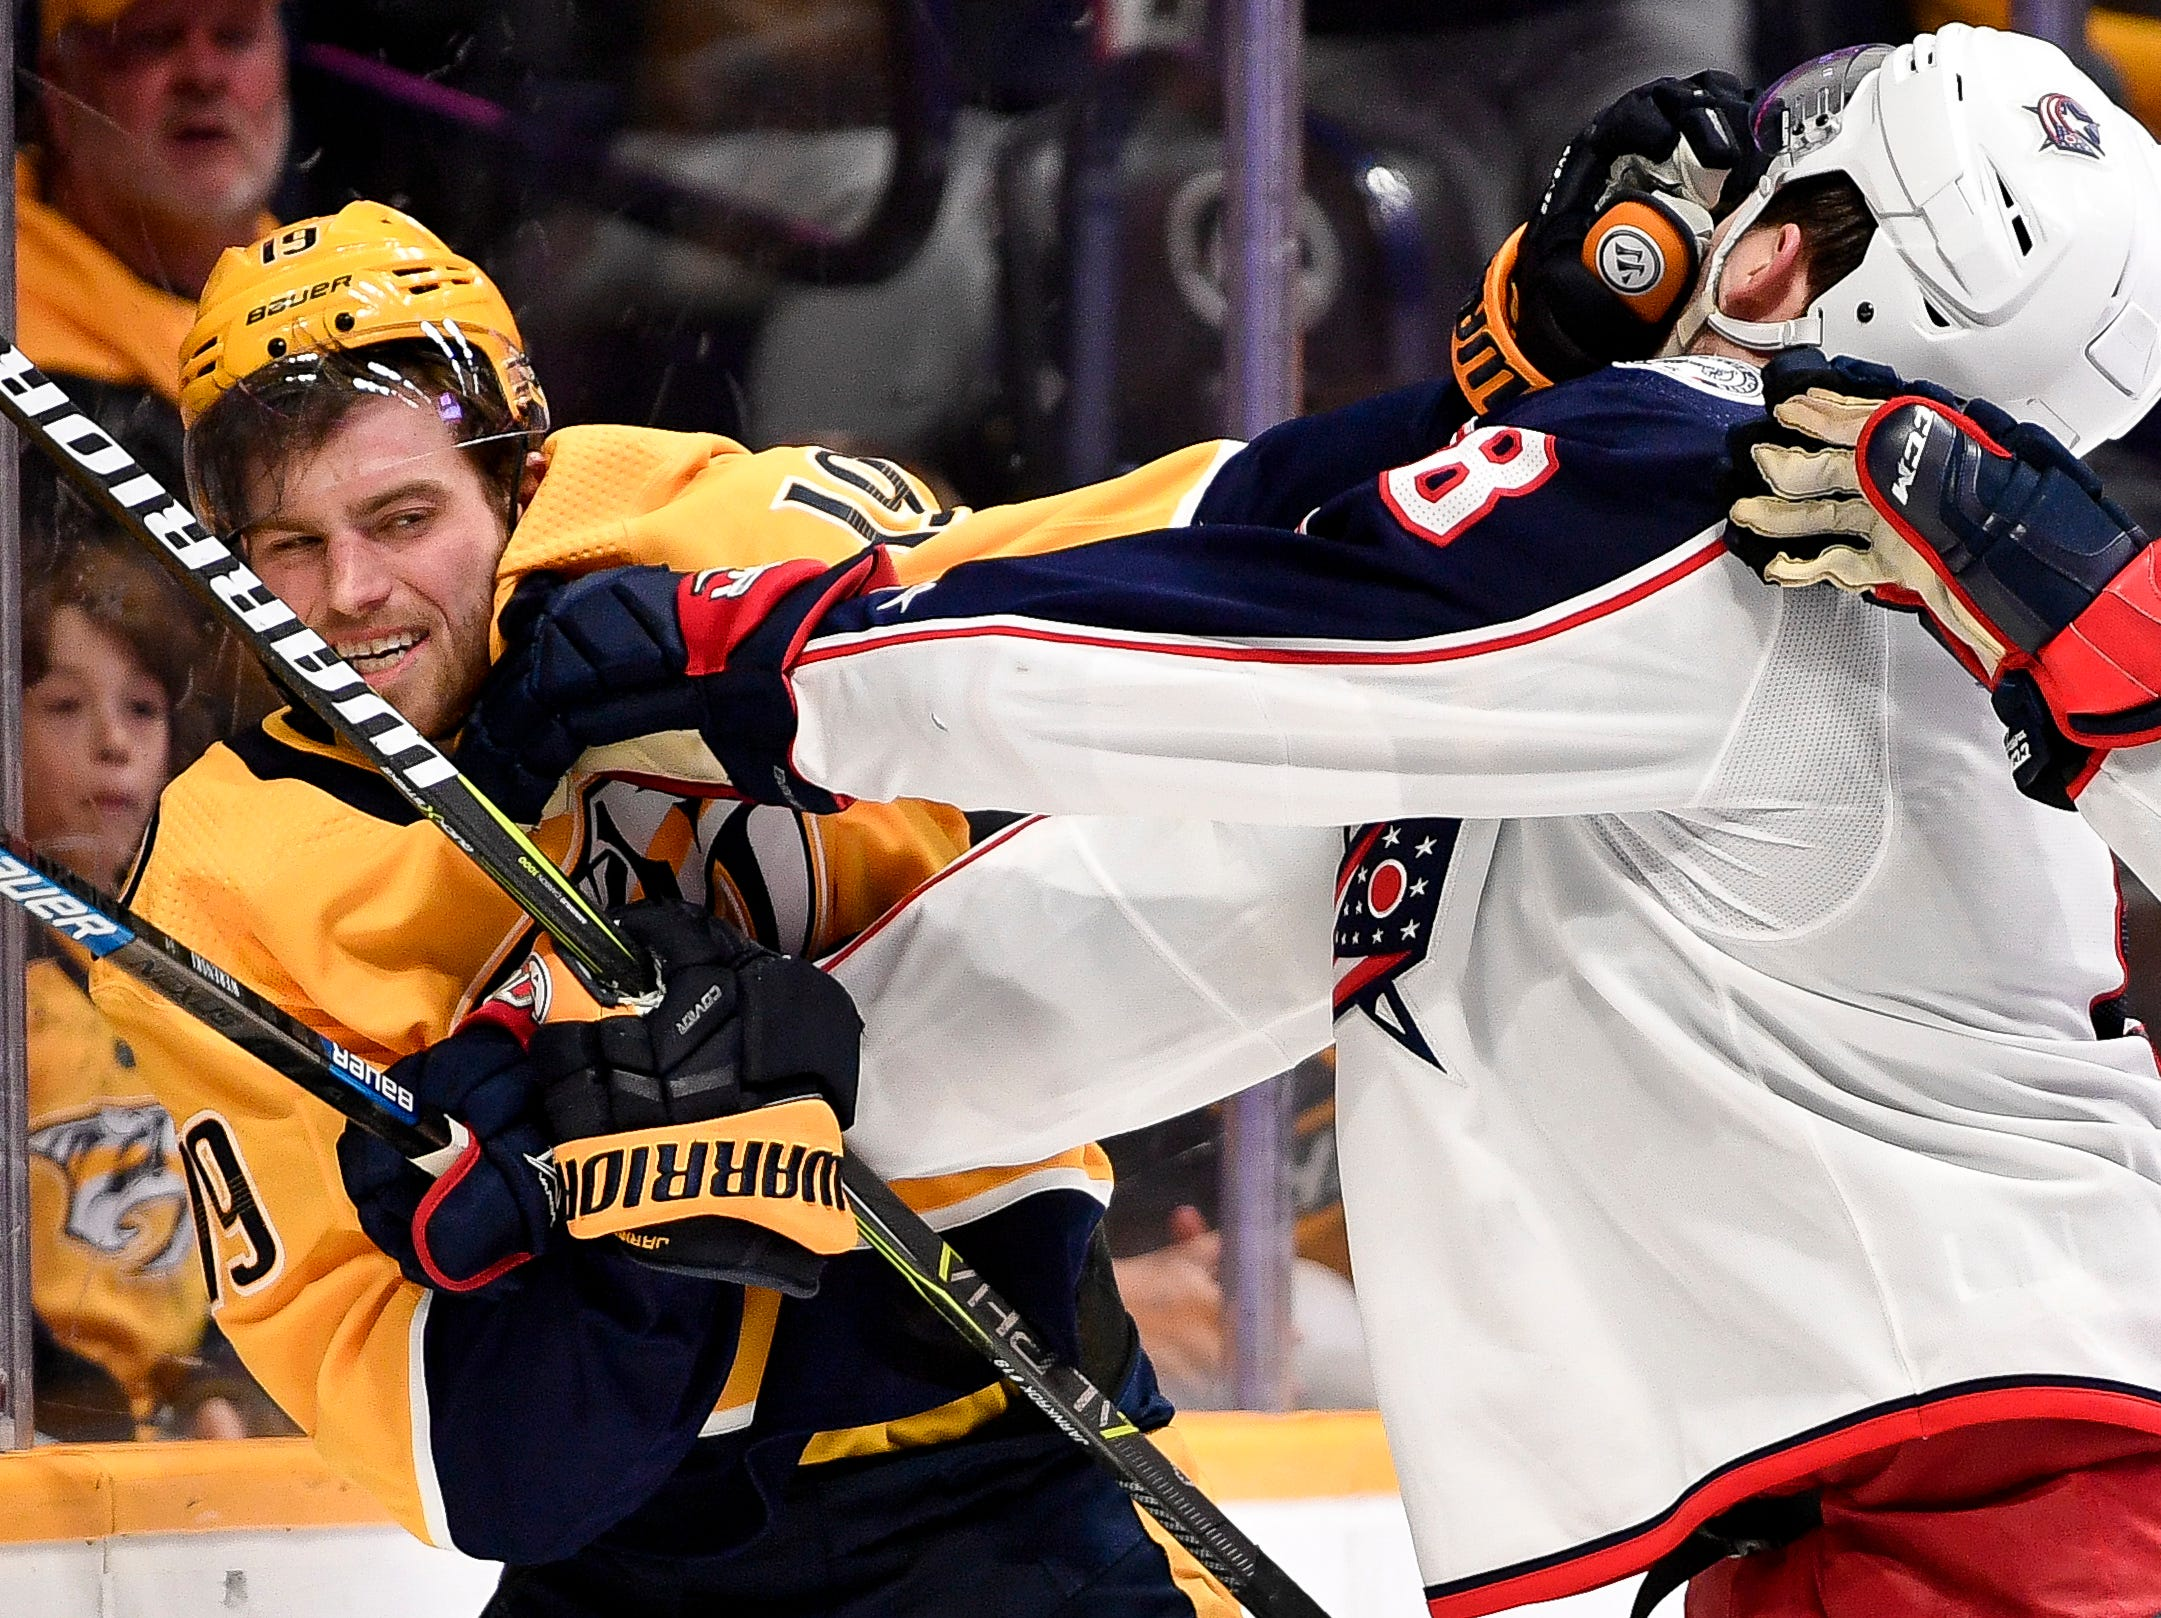 March 30, 2019 - Blue Jackets 5, Predators 2: Nashville Predators center Calle Jarnkrok (19) scuffles with Columbus Blue Jackets defenseman Zach Werenski (8) during the third period at Bridgestone Arena in Nashville, Tenn., Saturday, March 30, 2019.